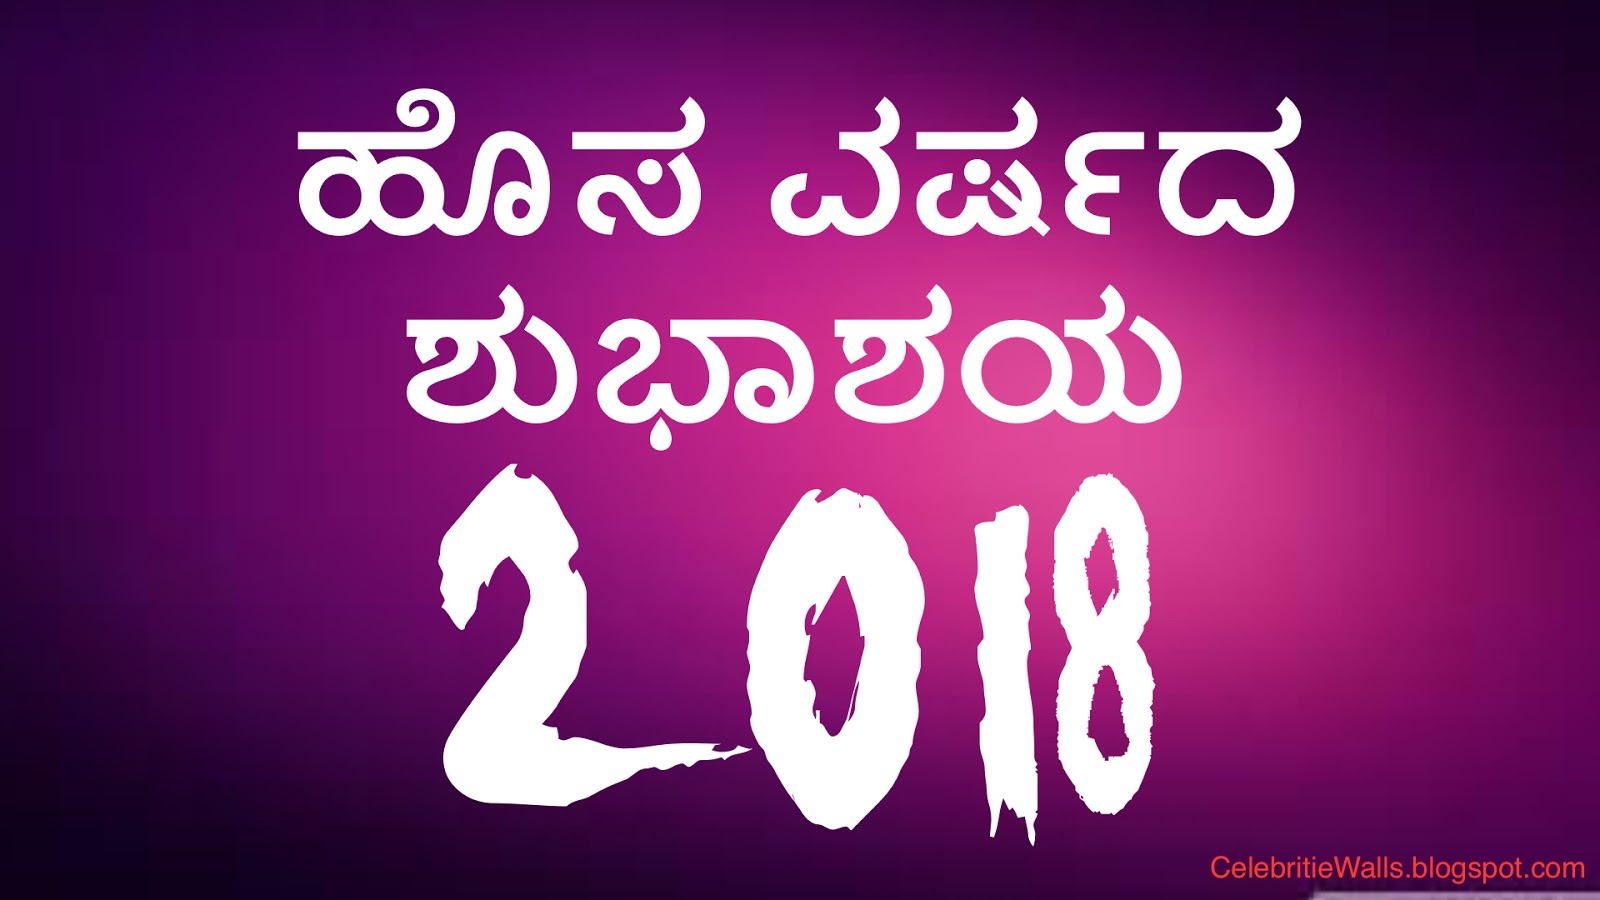 2018 wish you happy new year wallpapers in kannada